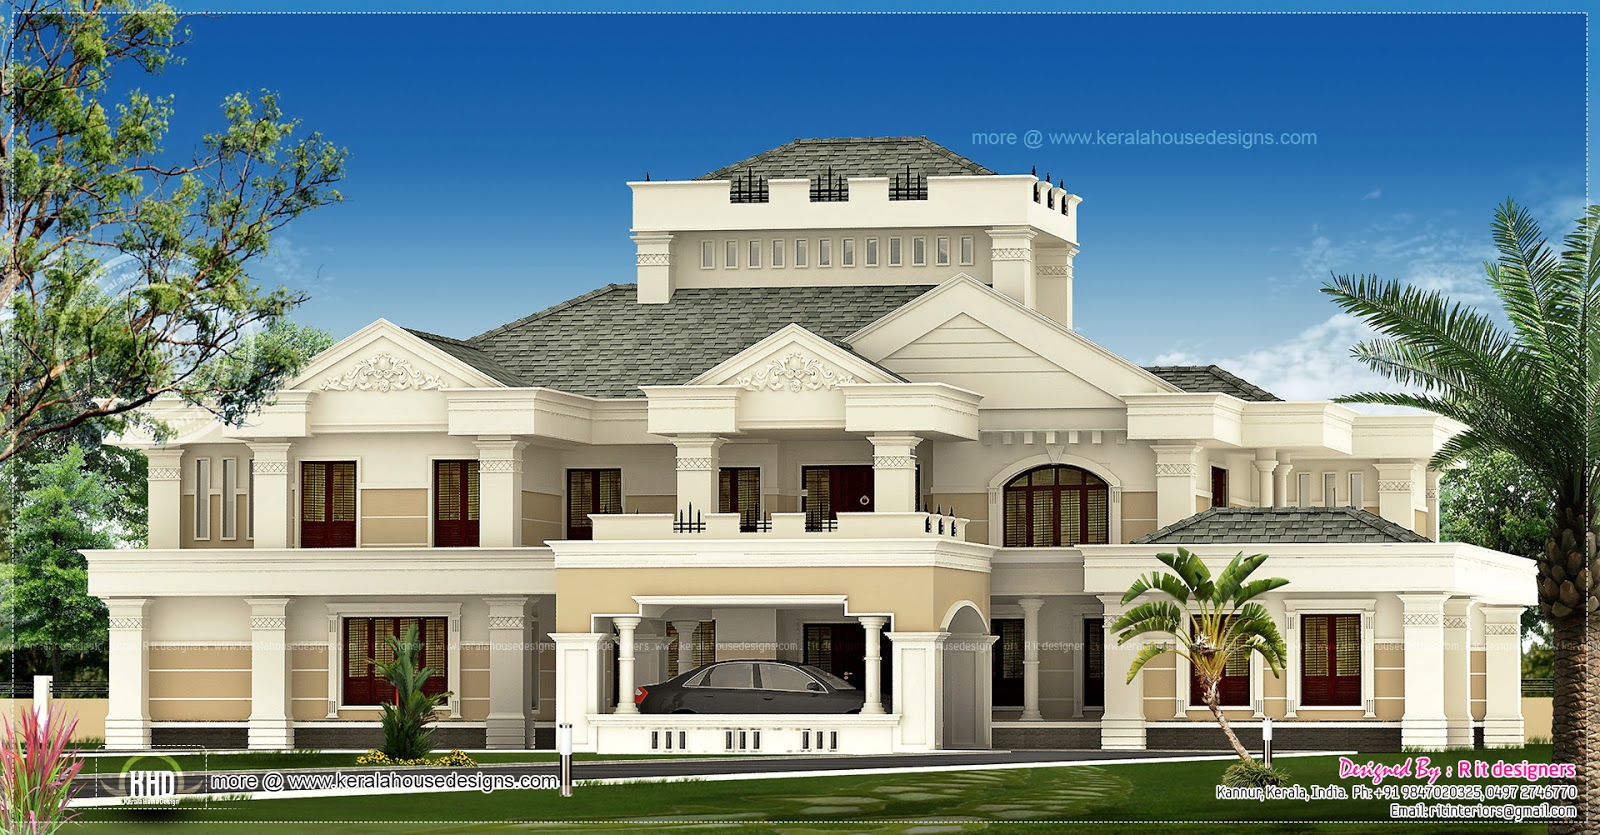 Super luxury kerala house exterior house design plans Good house designs in india